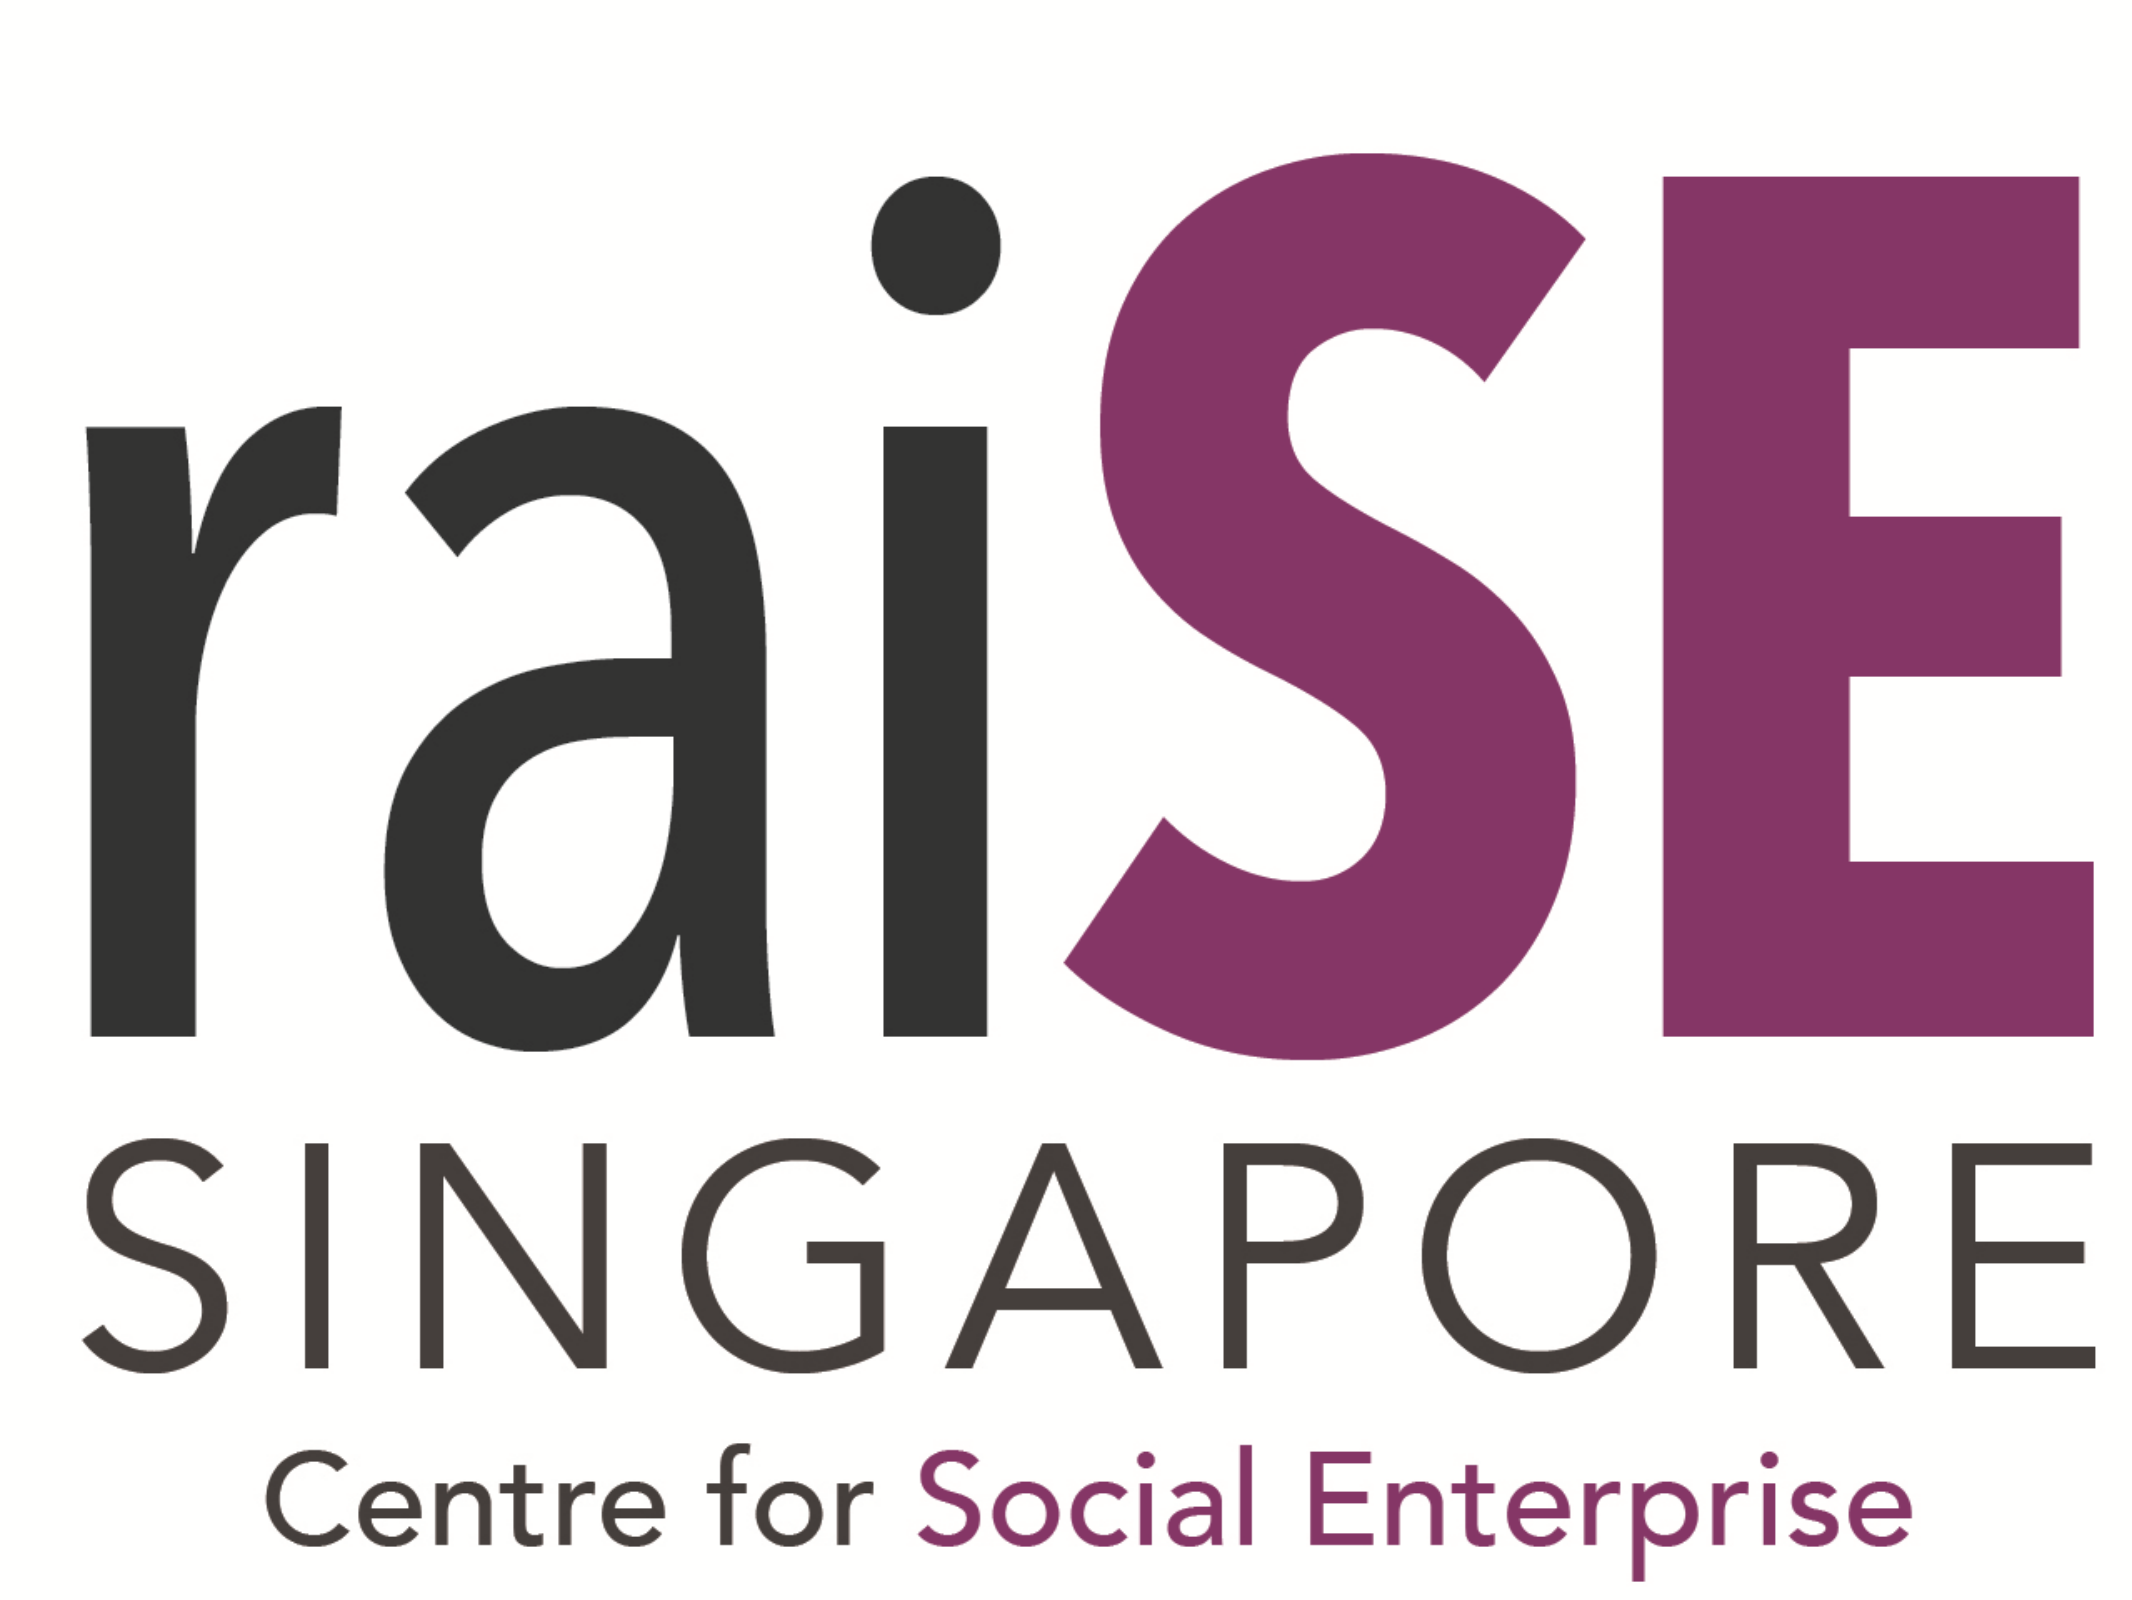 Singapore Centre For Social Enterprise